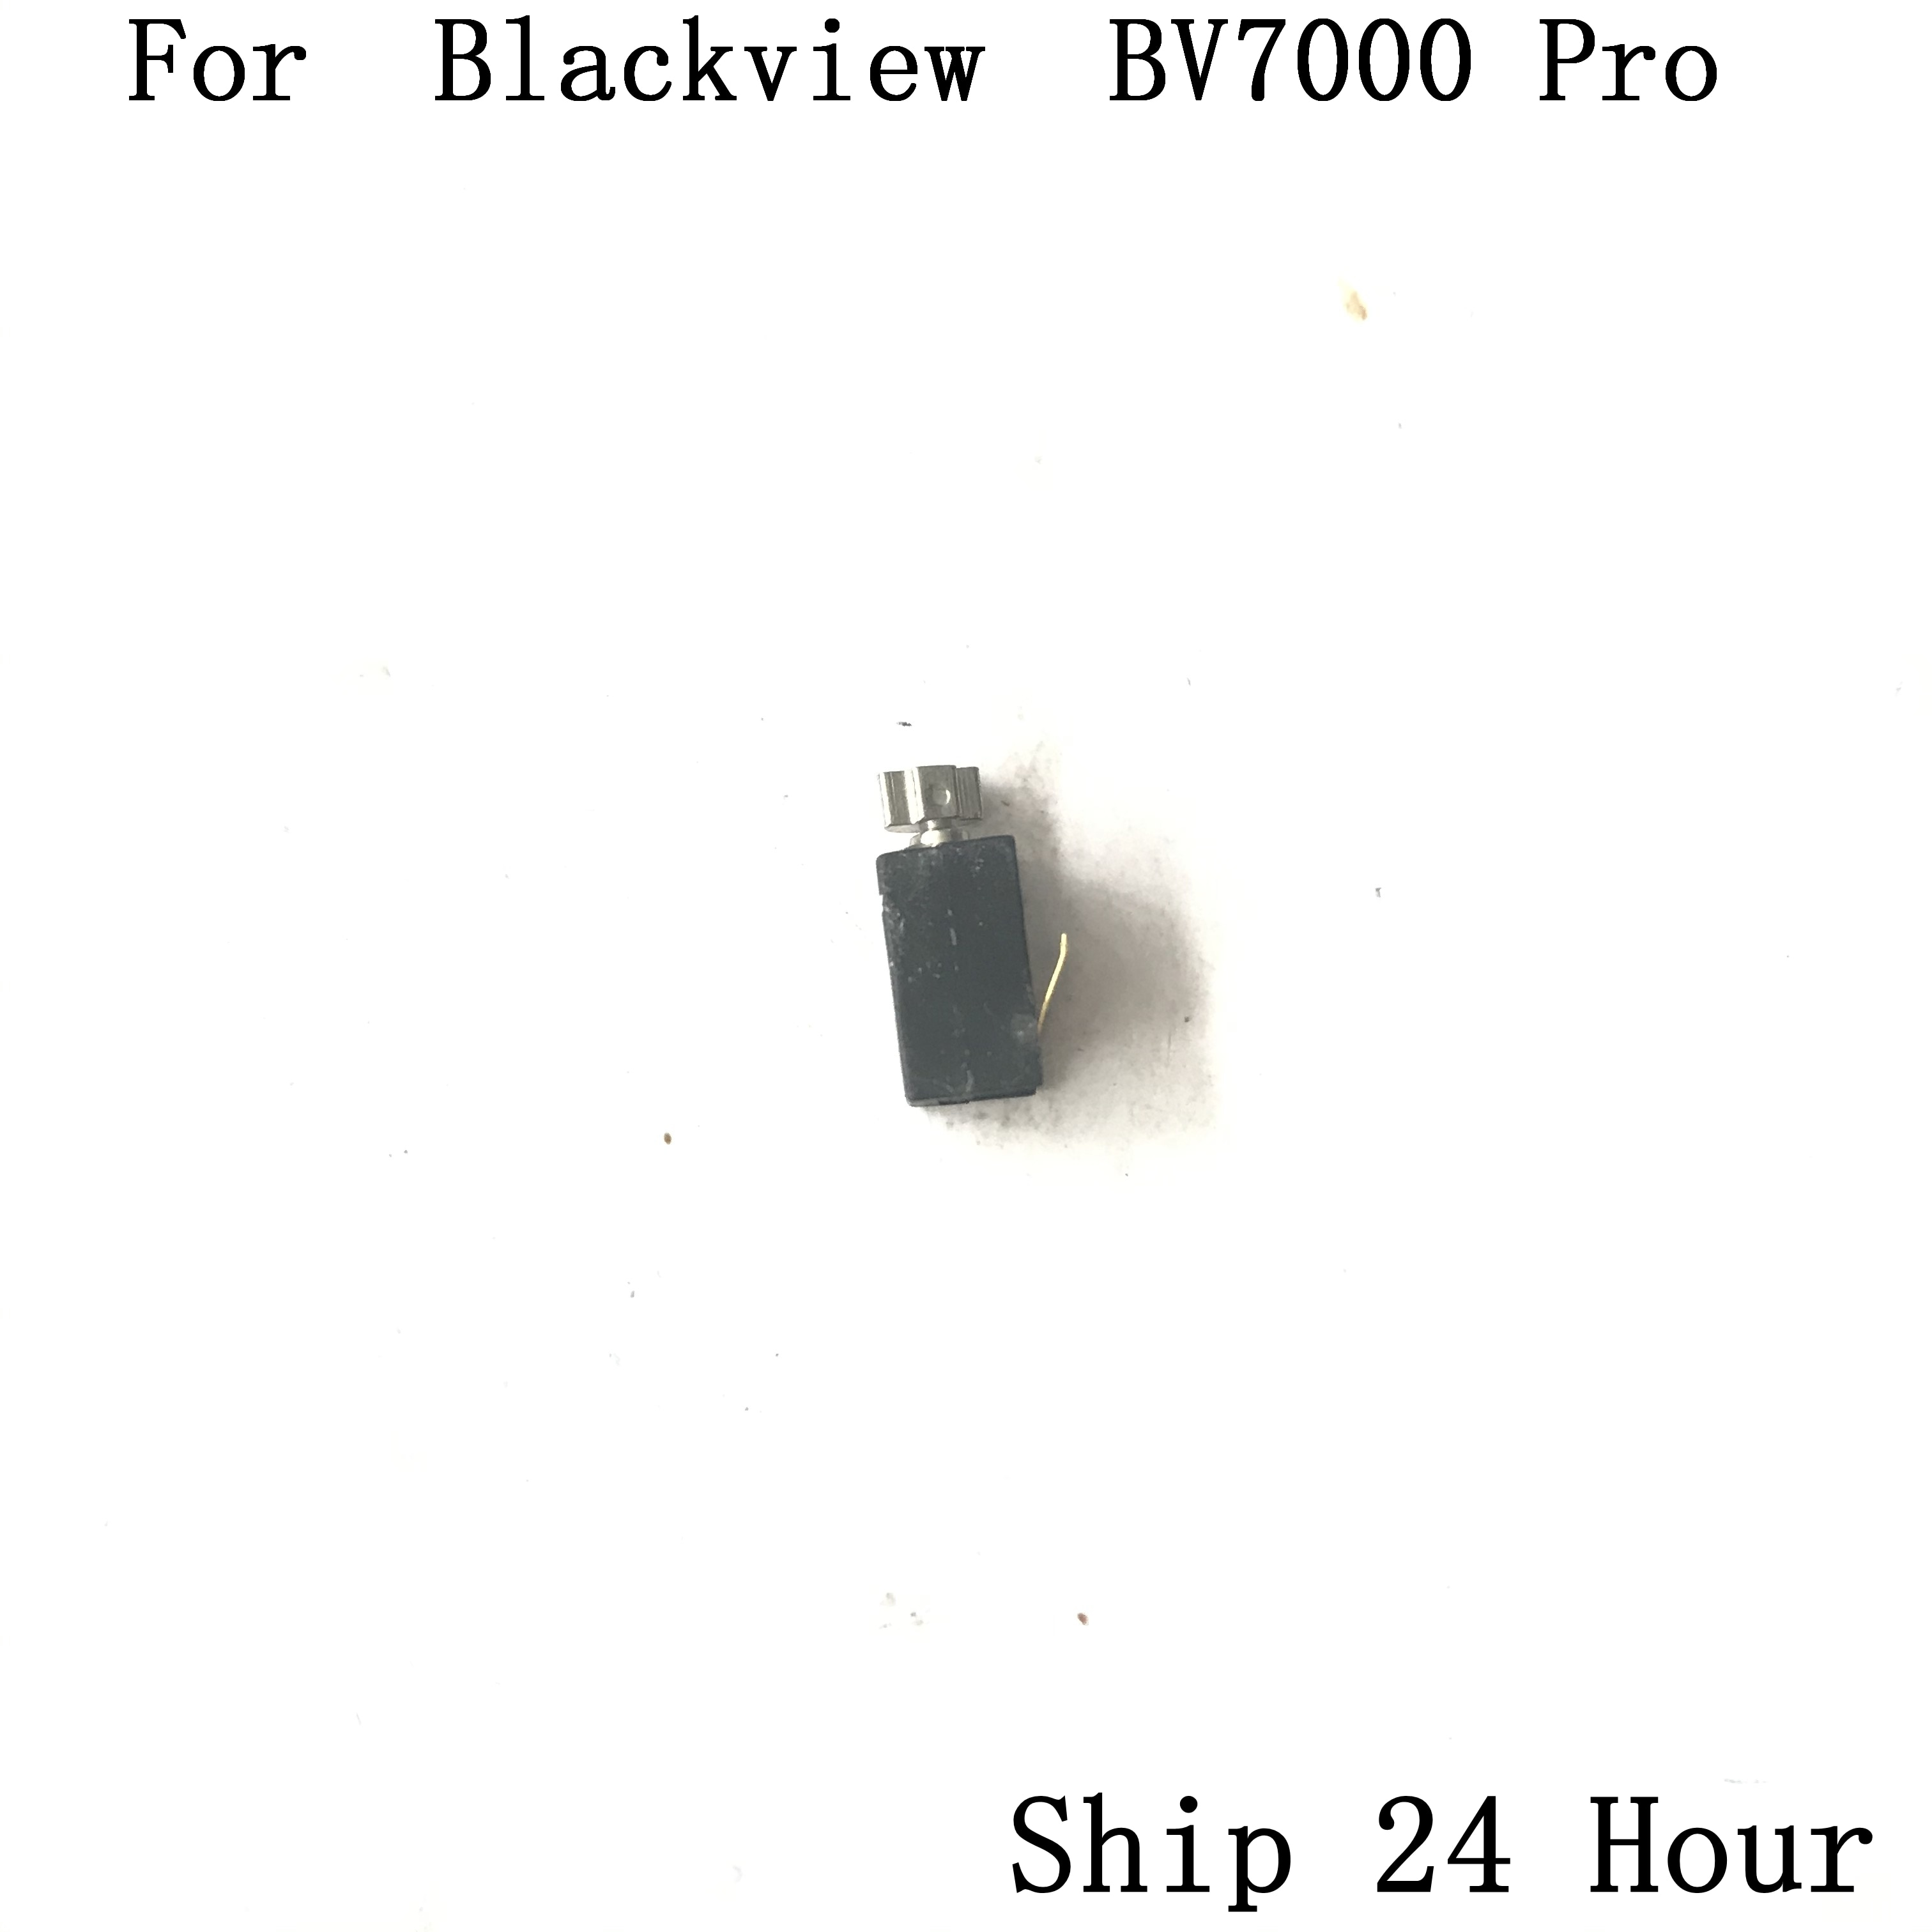 New Vibration Motor For Blackview BV7000 Pro MTK6750 Octa Core 5.0 inch 1920x1080 Free Shipping enlarge